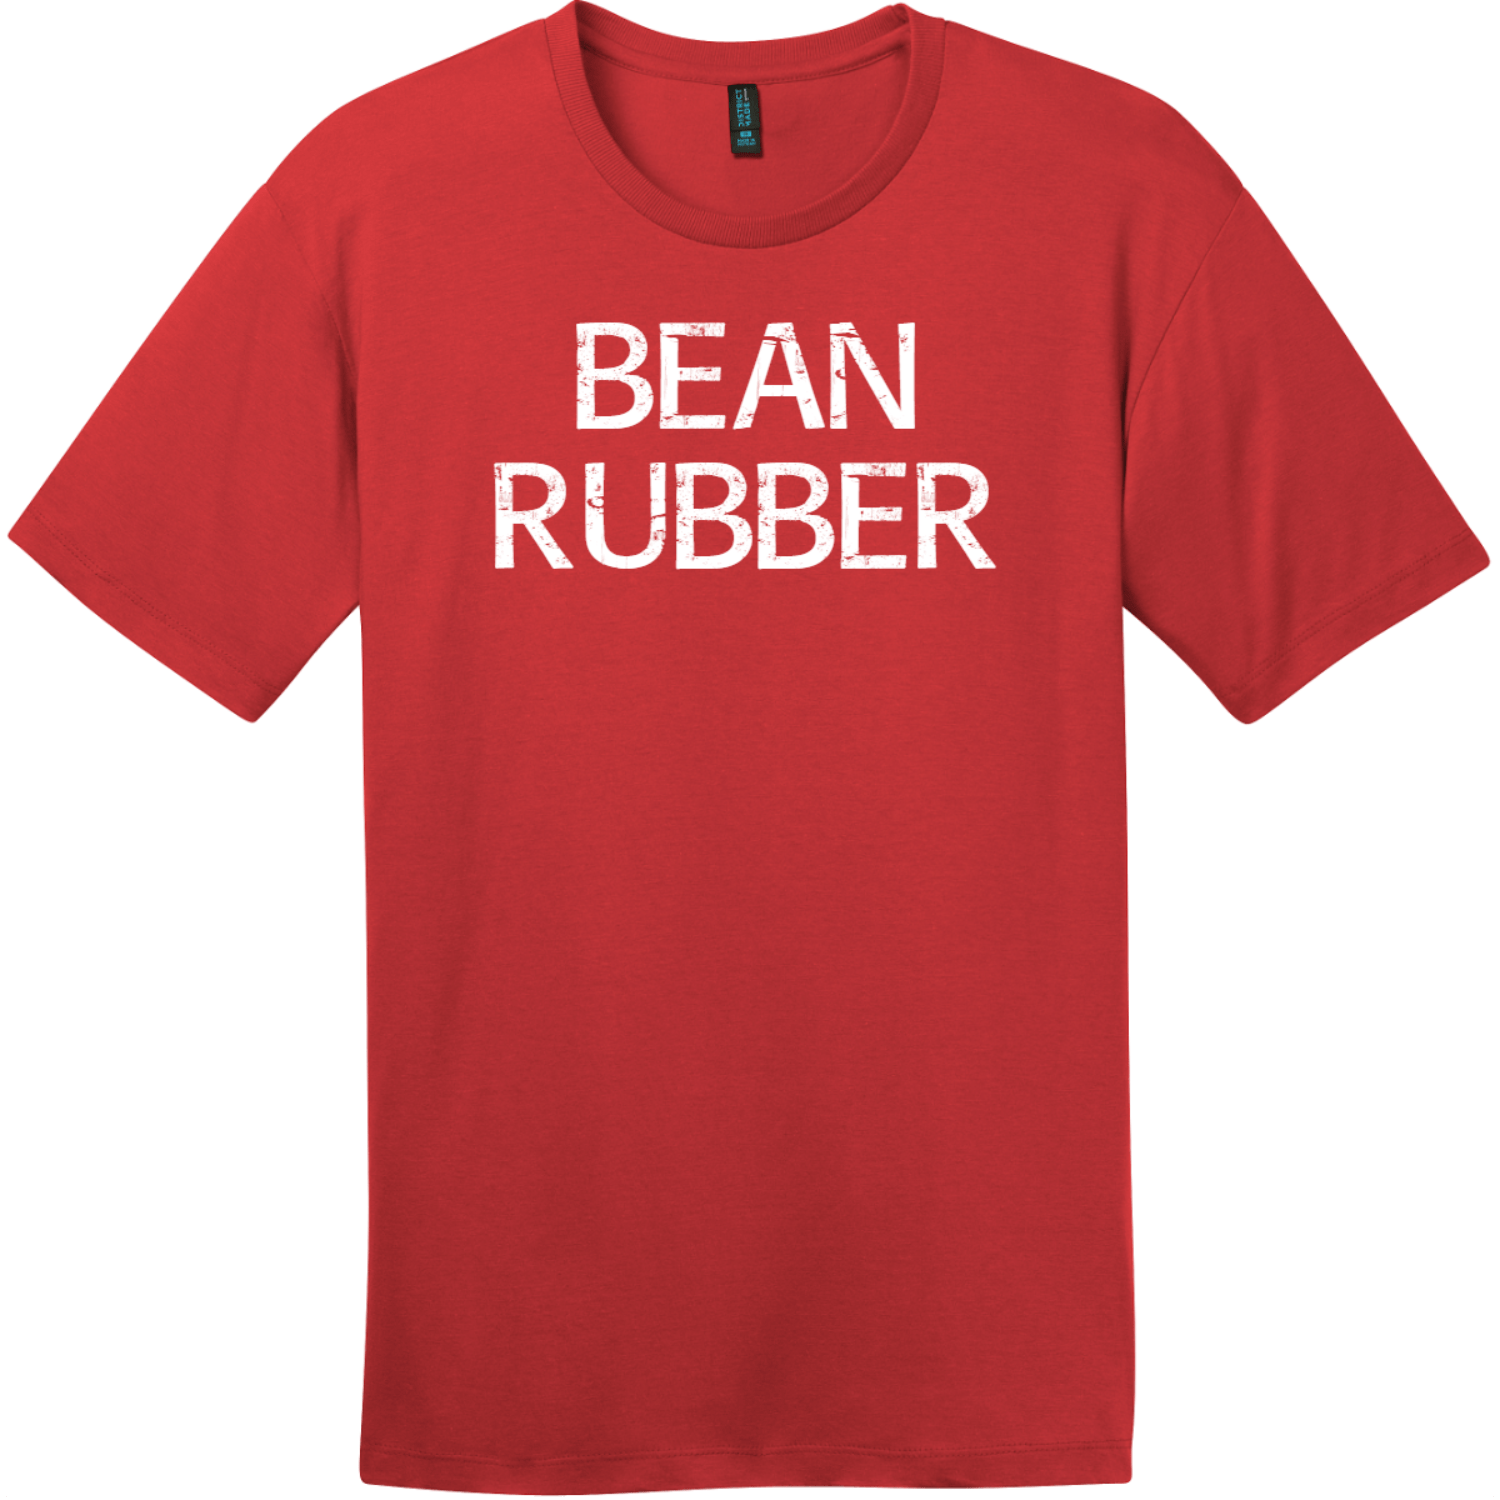 Bean Rubber T-Shirt Classic Red District Perfect Weight Tee DT104